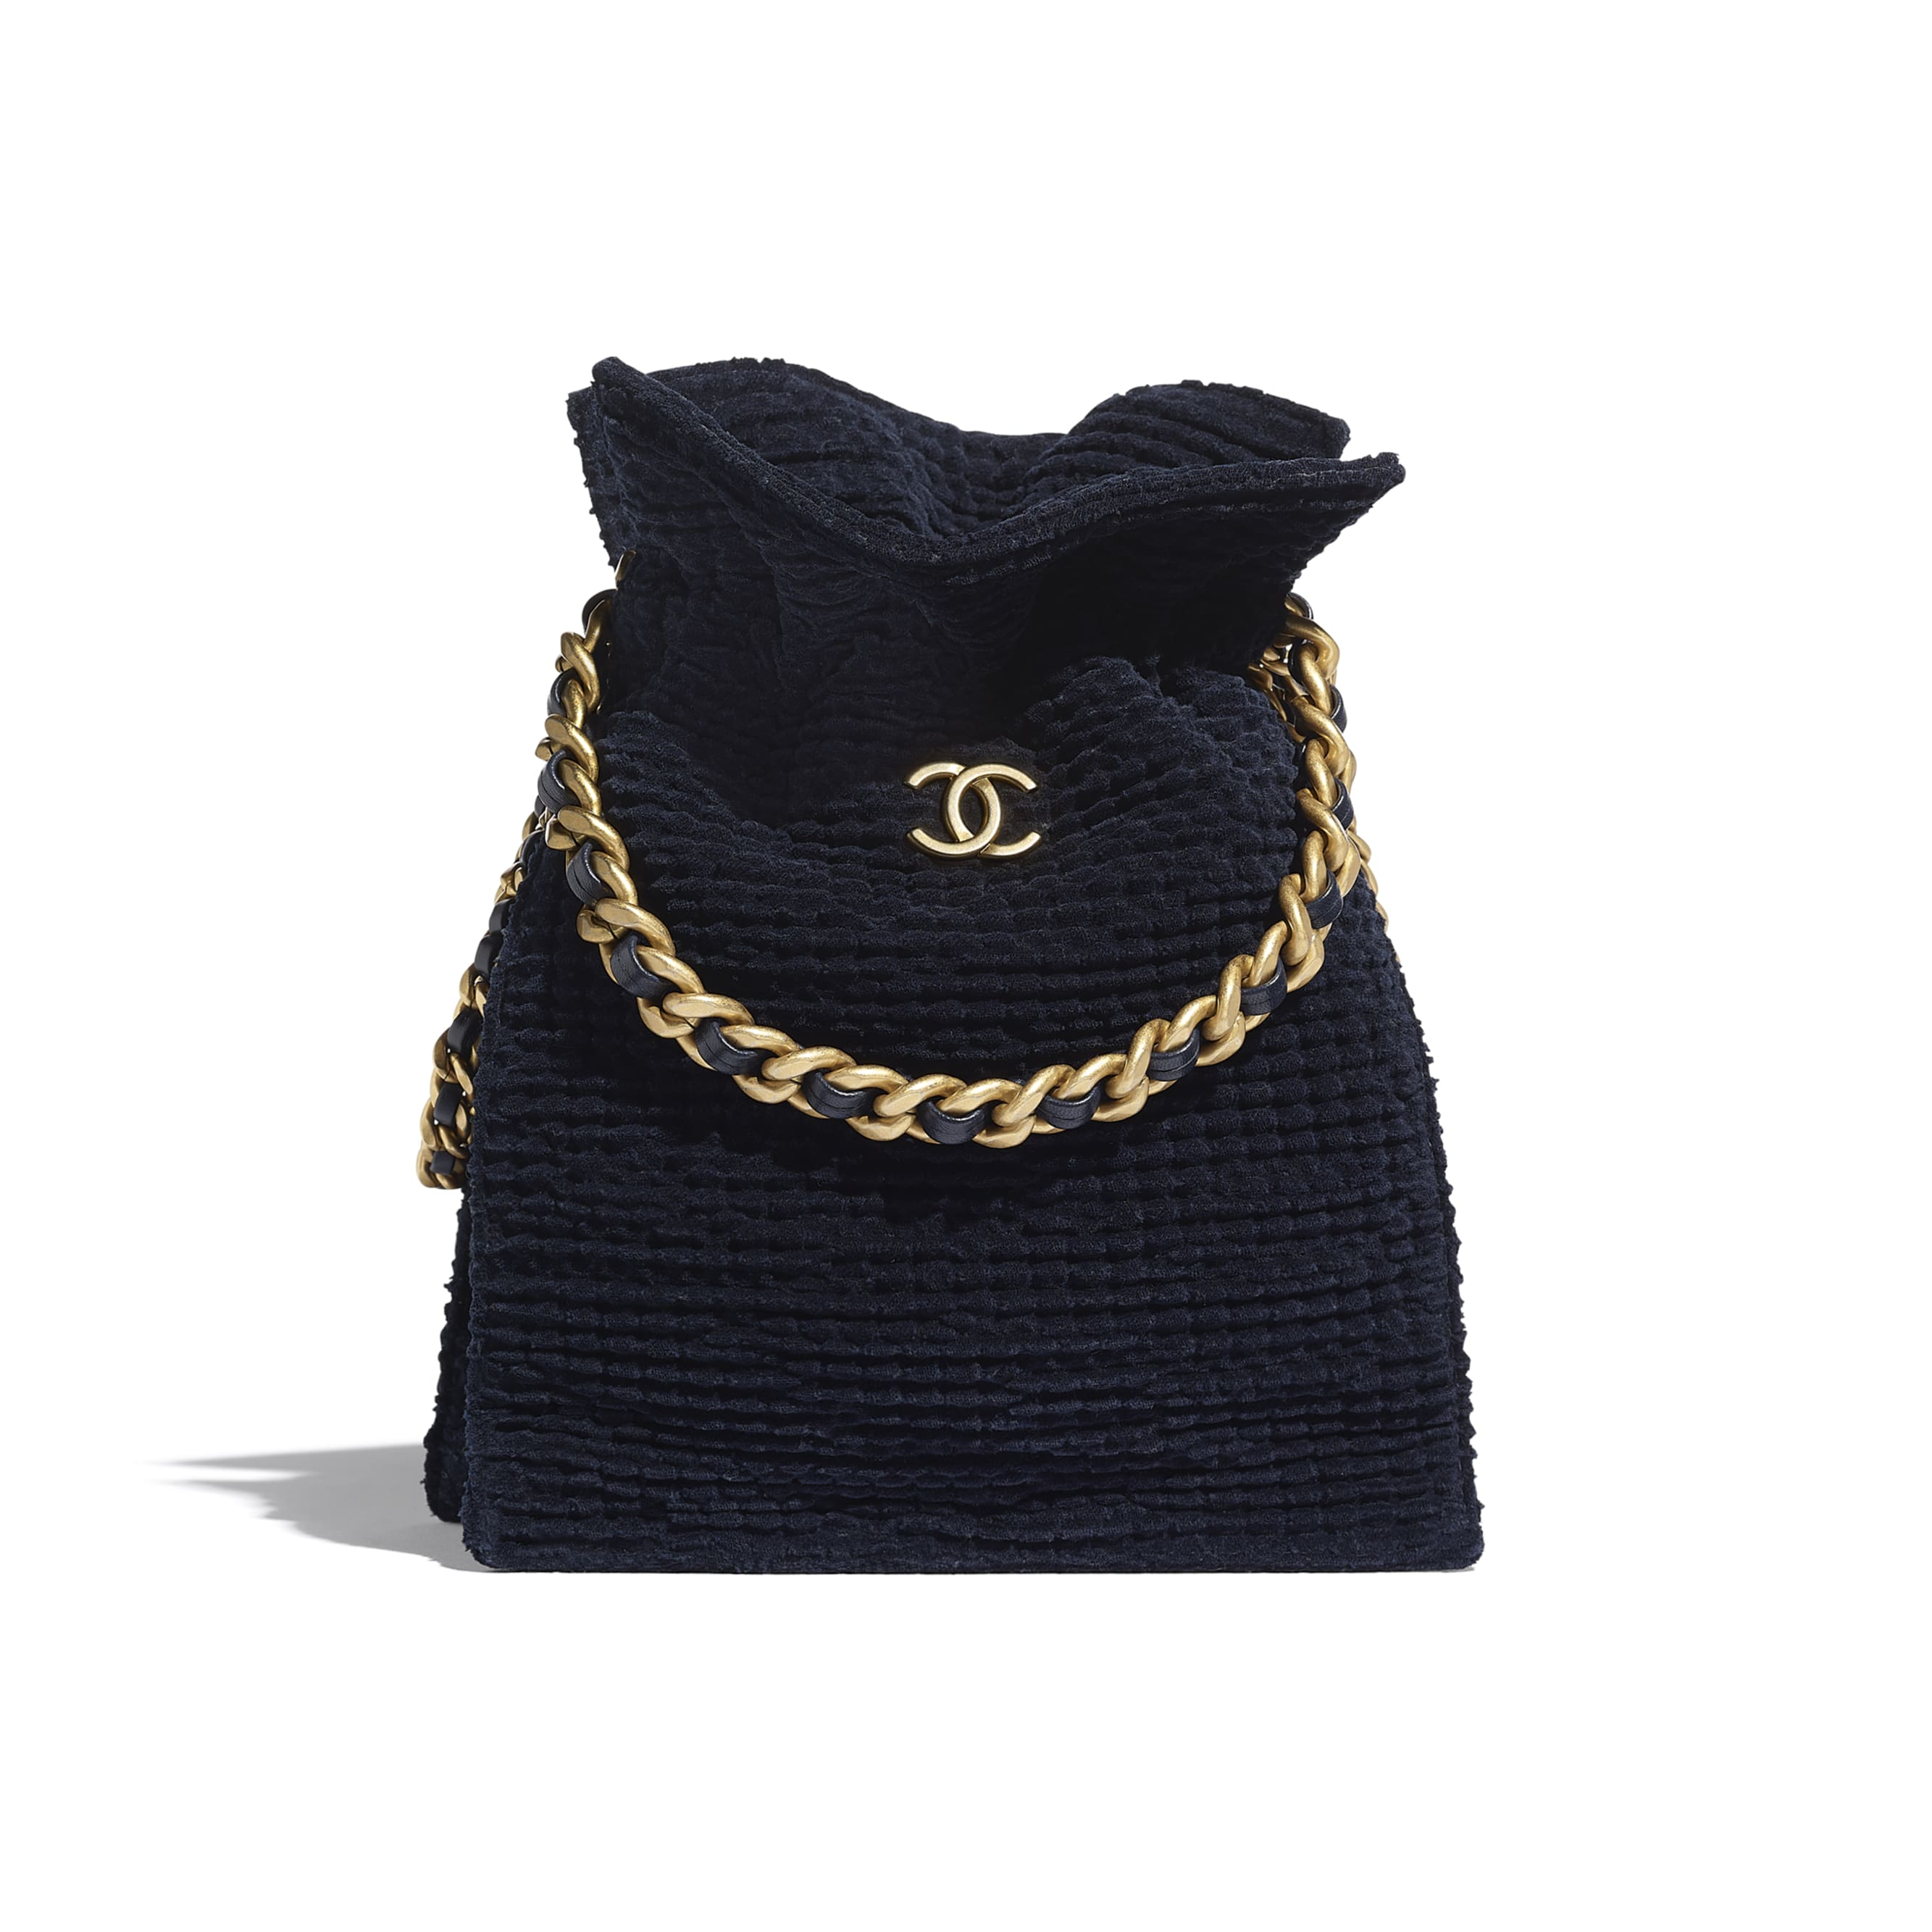 Shopping Bag - Navy Blue - Cotton Tweed & Gold-Tone Metal - CHANEL - Default view - see standard sized version